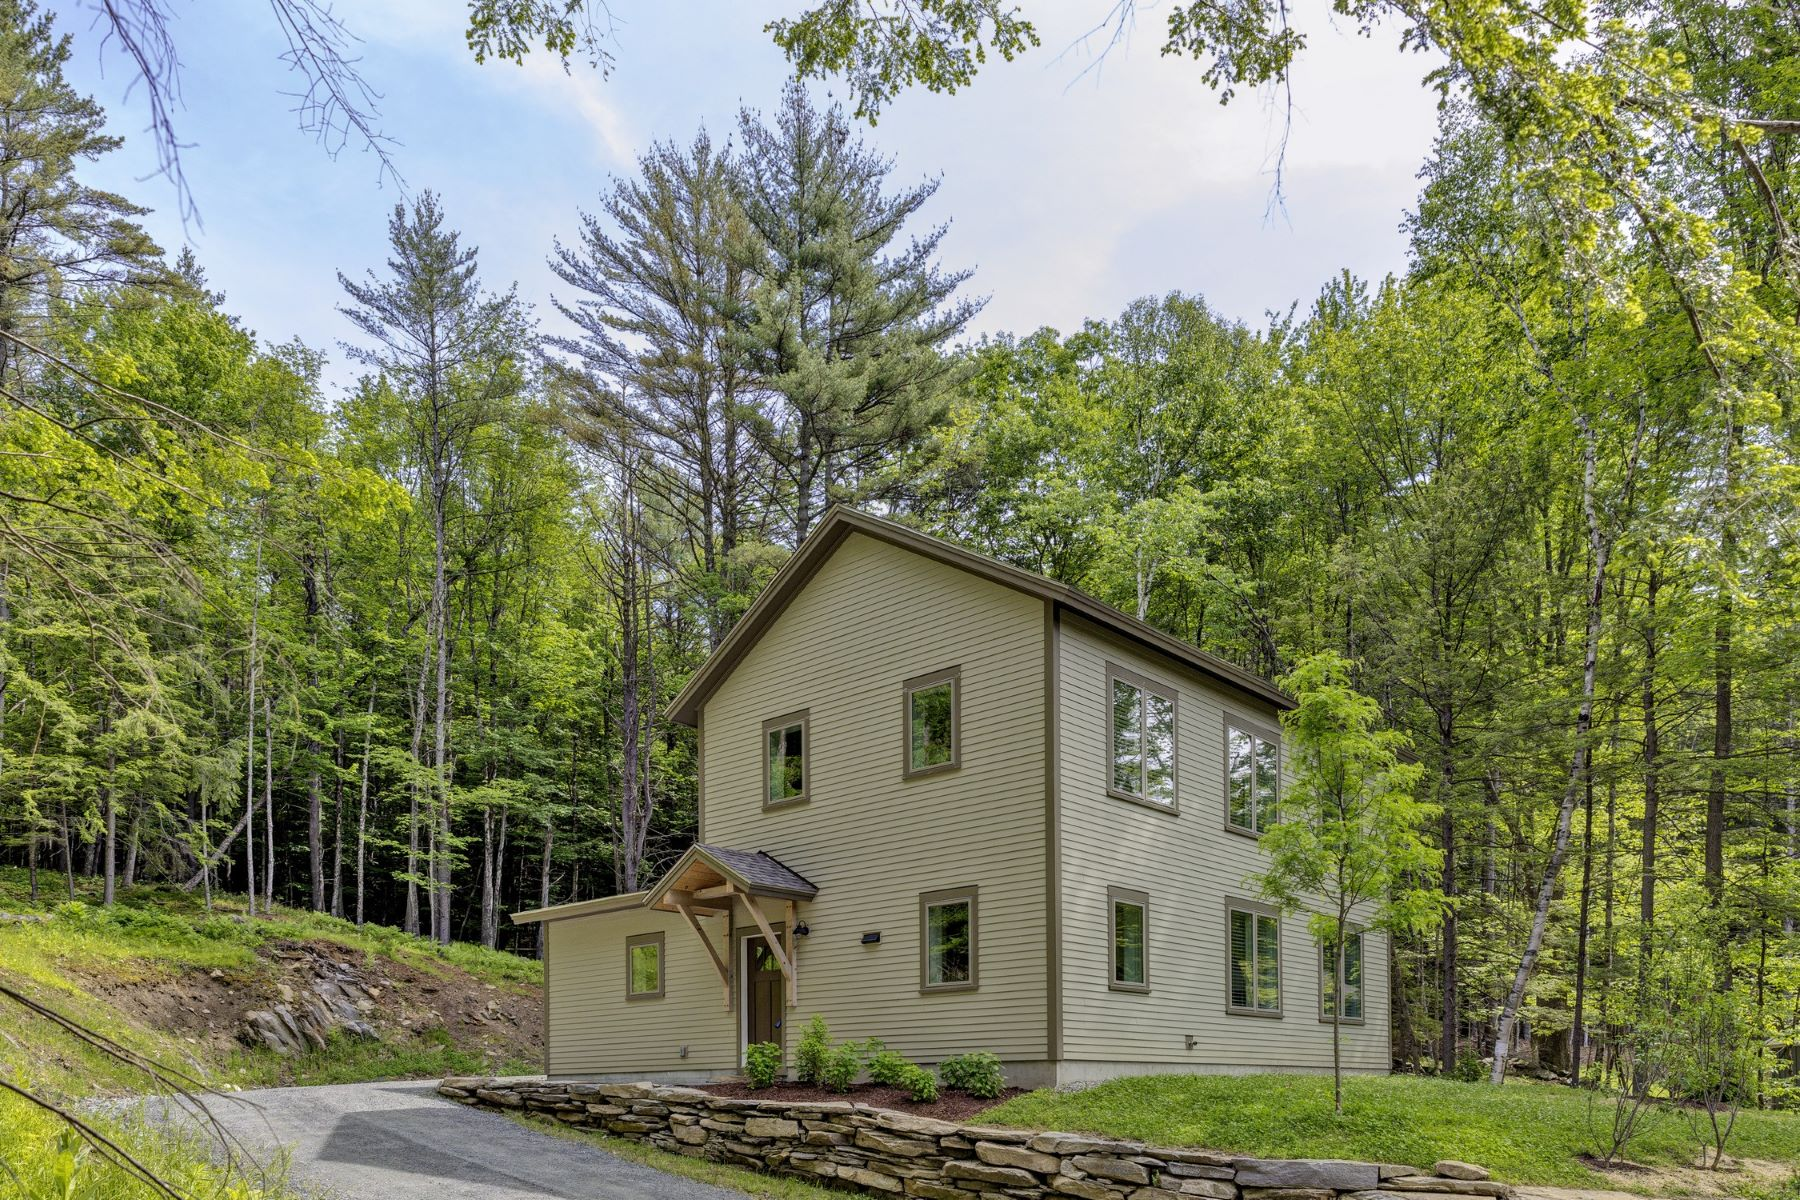 Single Family Home for Sale at 207 Hartness Way 5328, Hartford 207 Hartness Way 5328 Hartford, Vermont 05059 United States